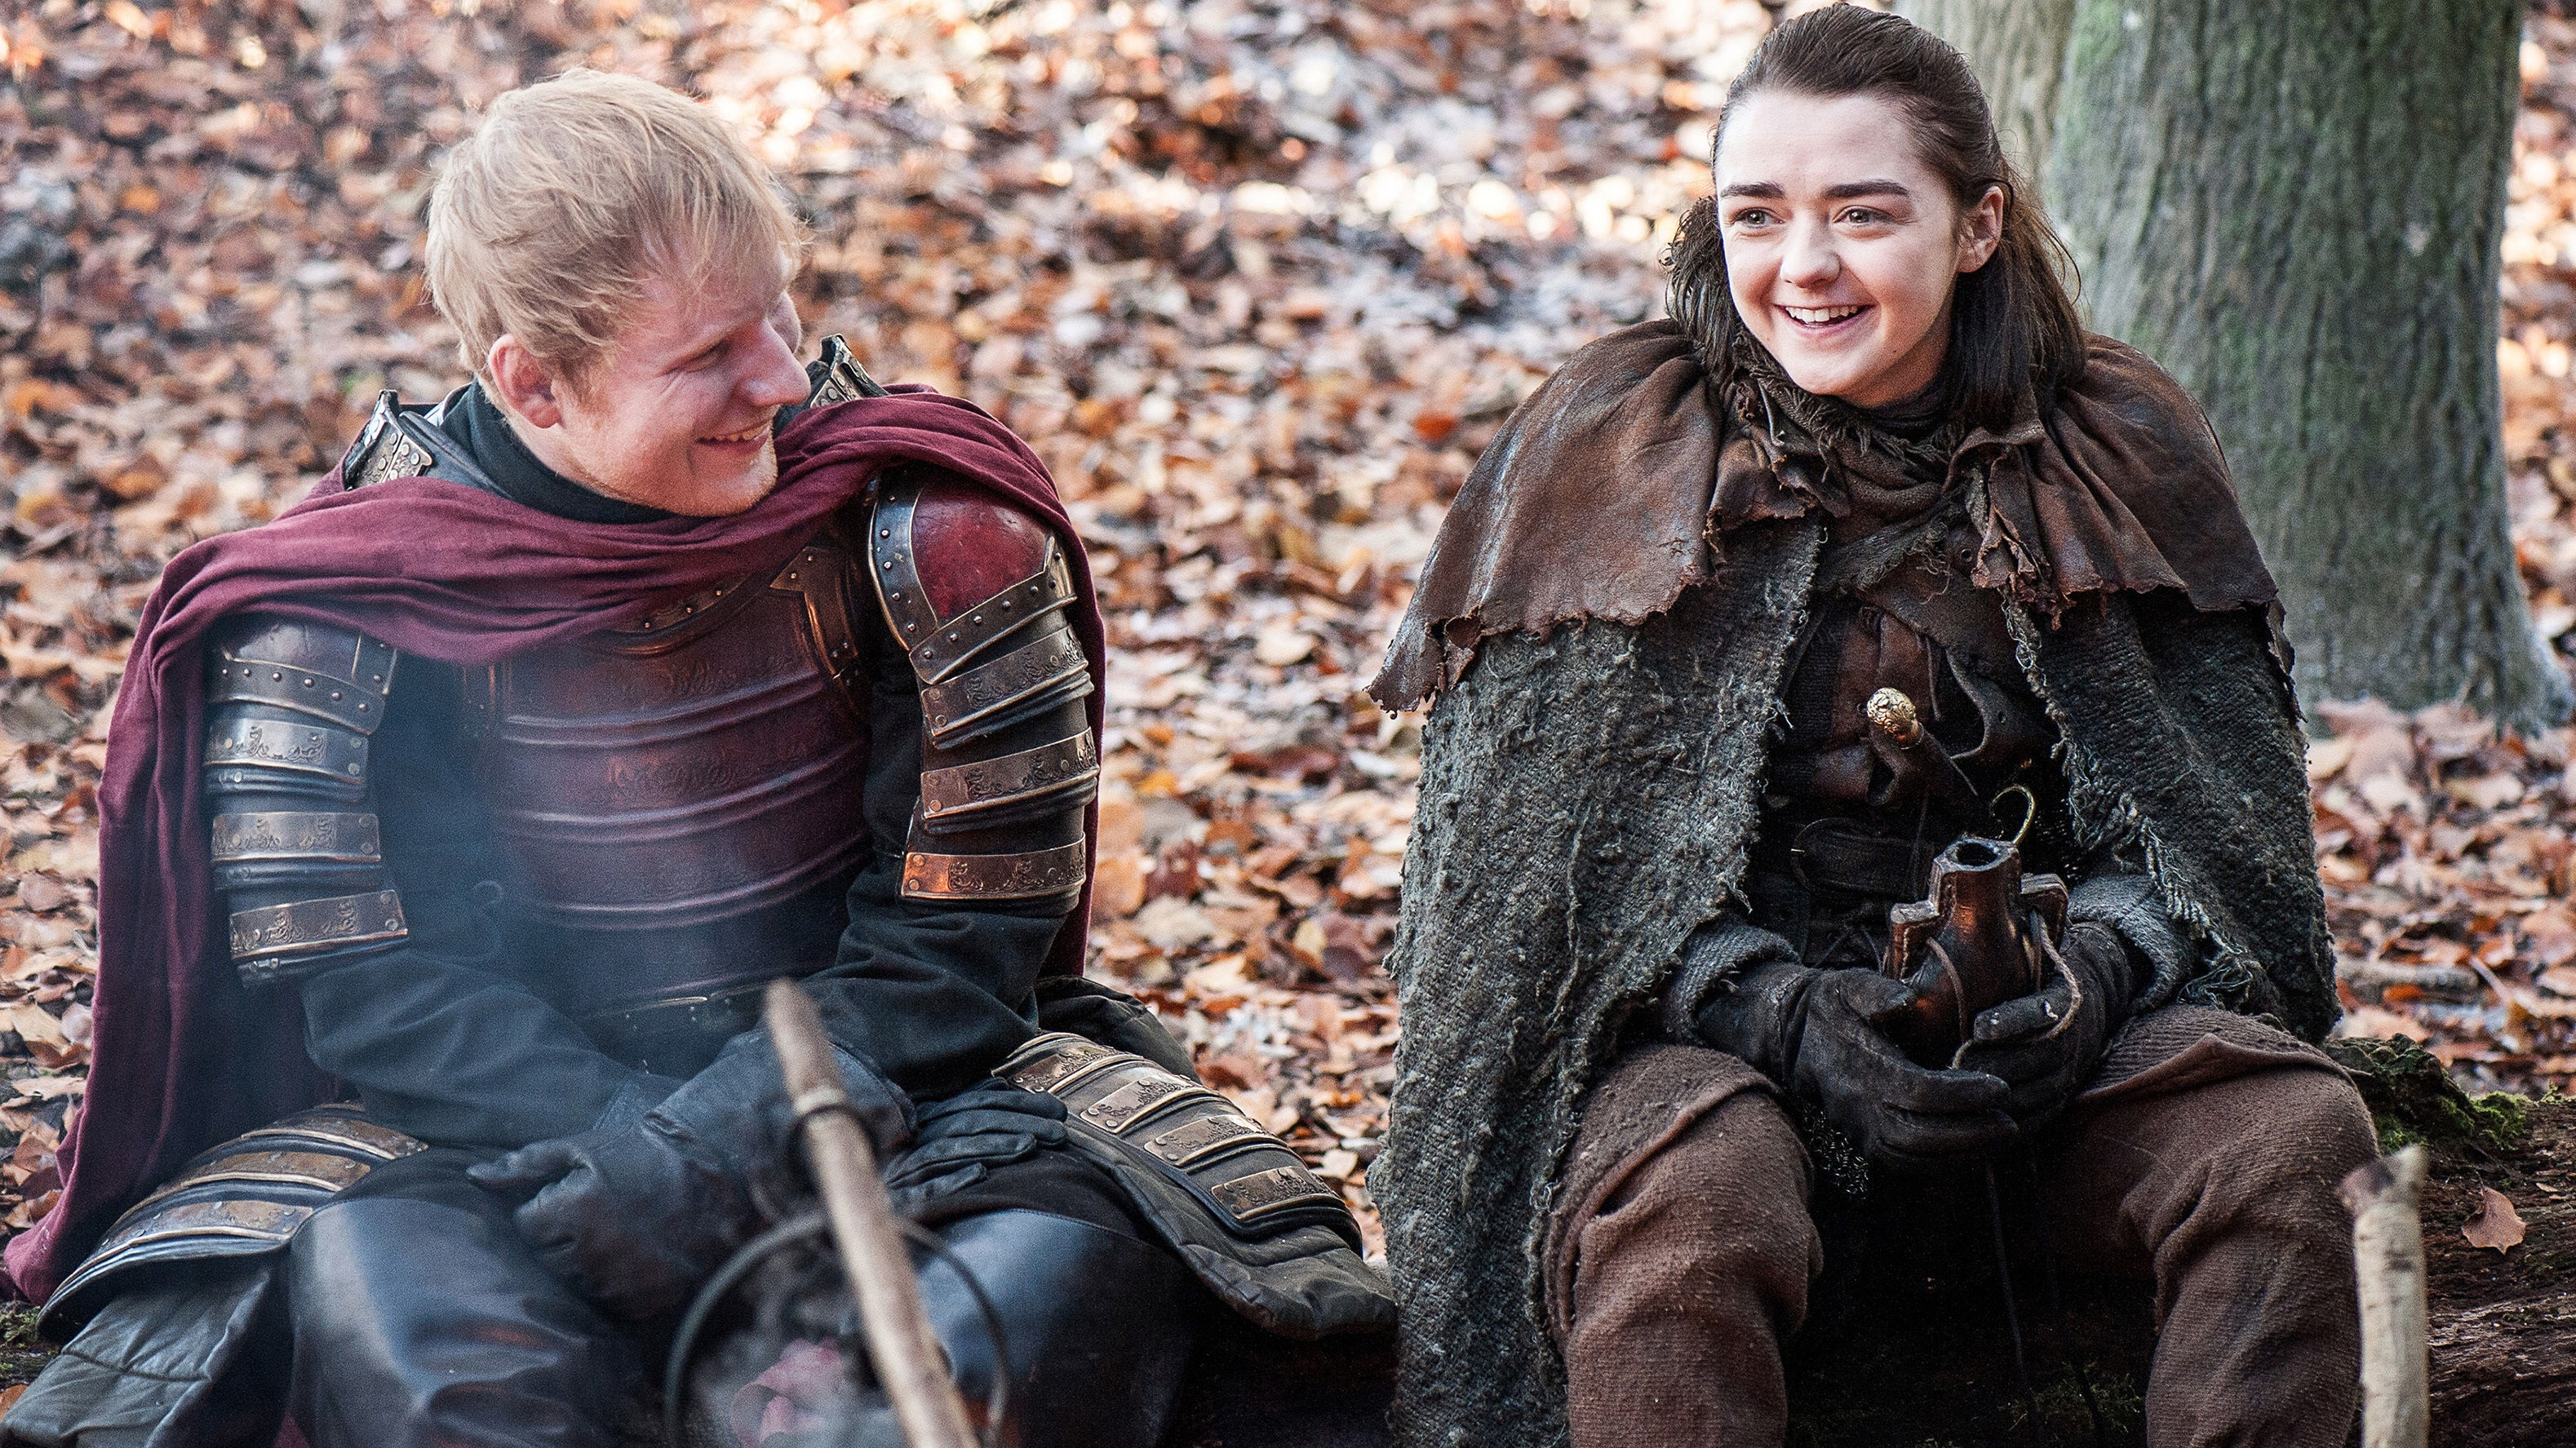 Game Of Thrones' Ed Sheeran and Maisie Williams